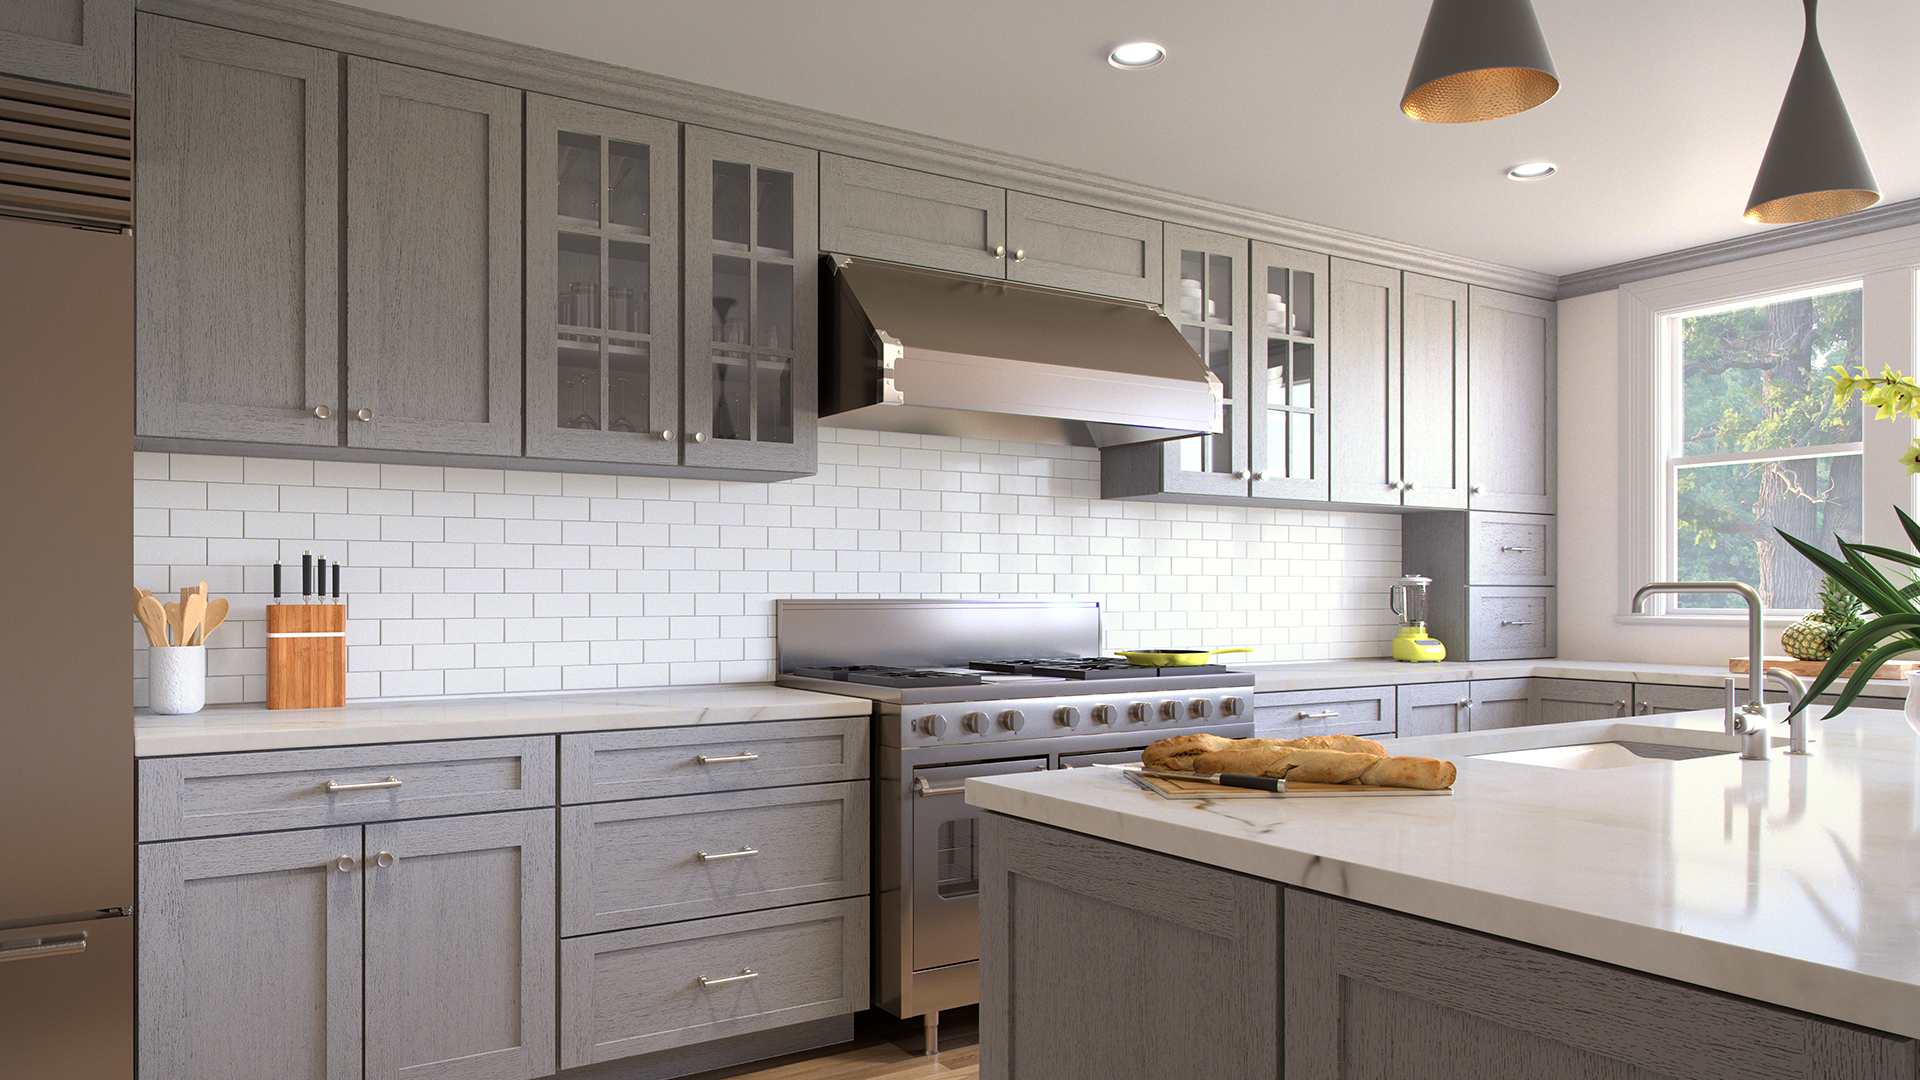 Farmhouse Kitchen Tile Ideas